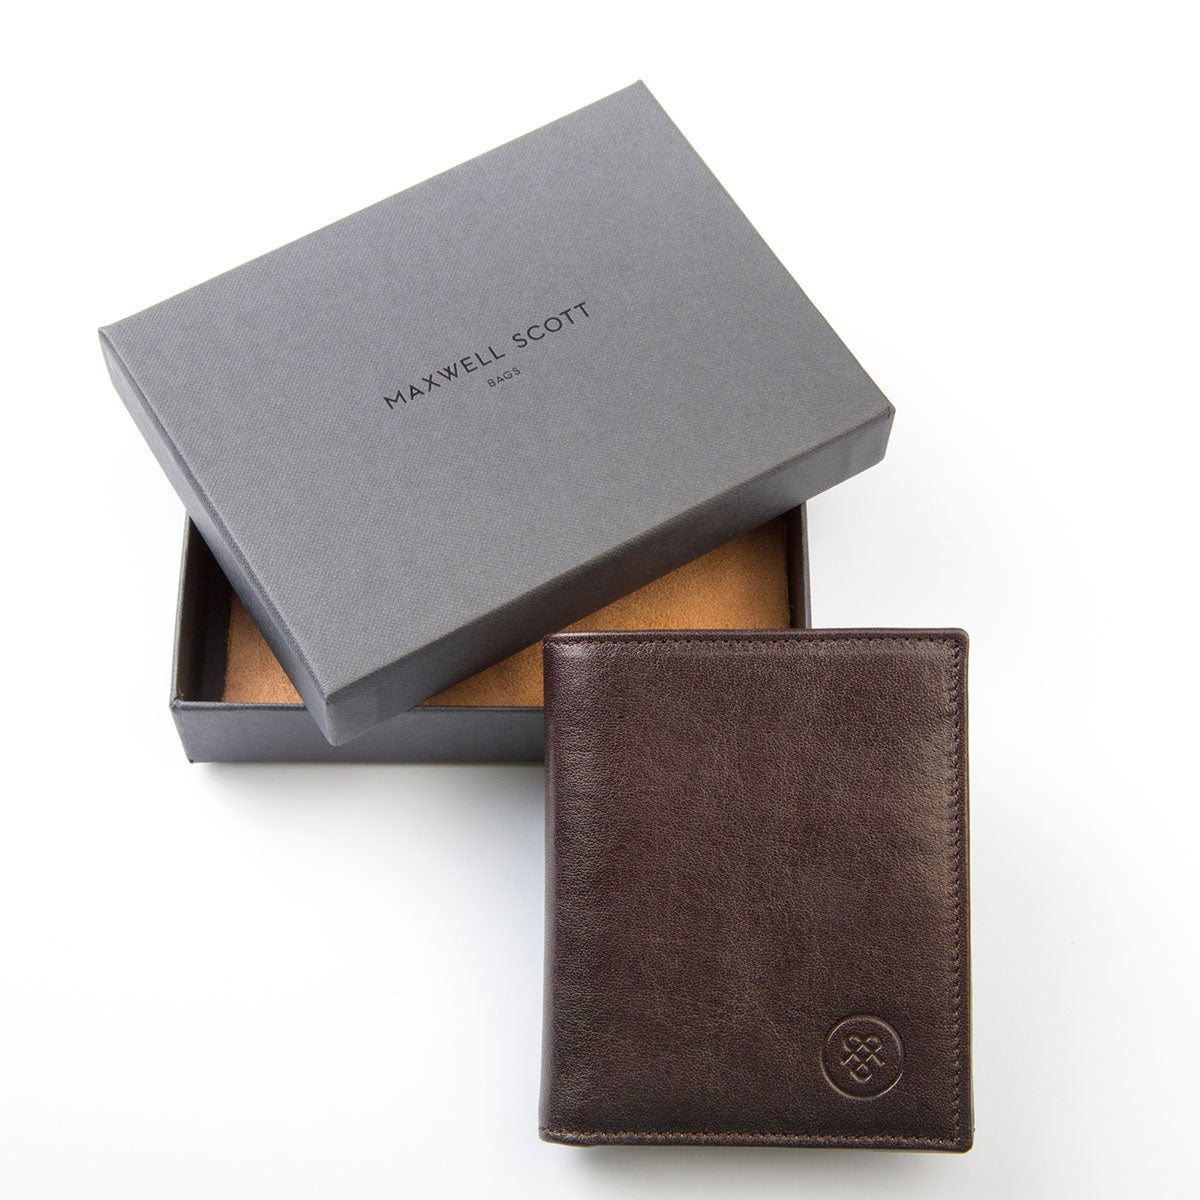 Image 7 of the 'Rocca' Dark Chocolate Veg-Tanned Leather Wallet